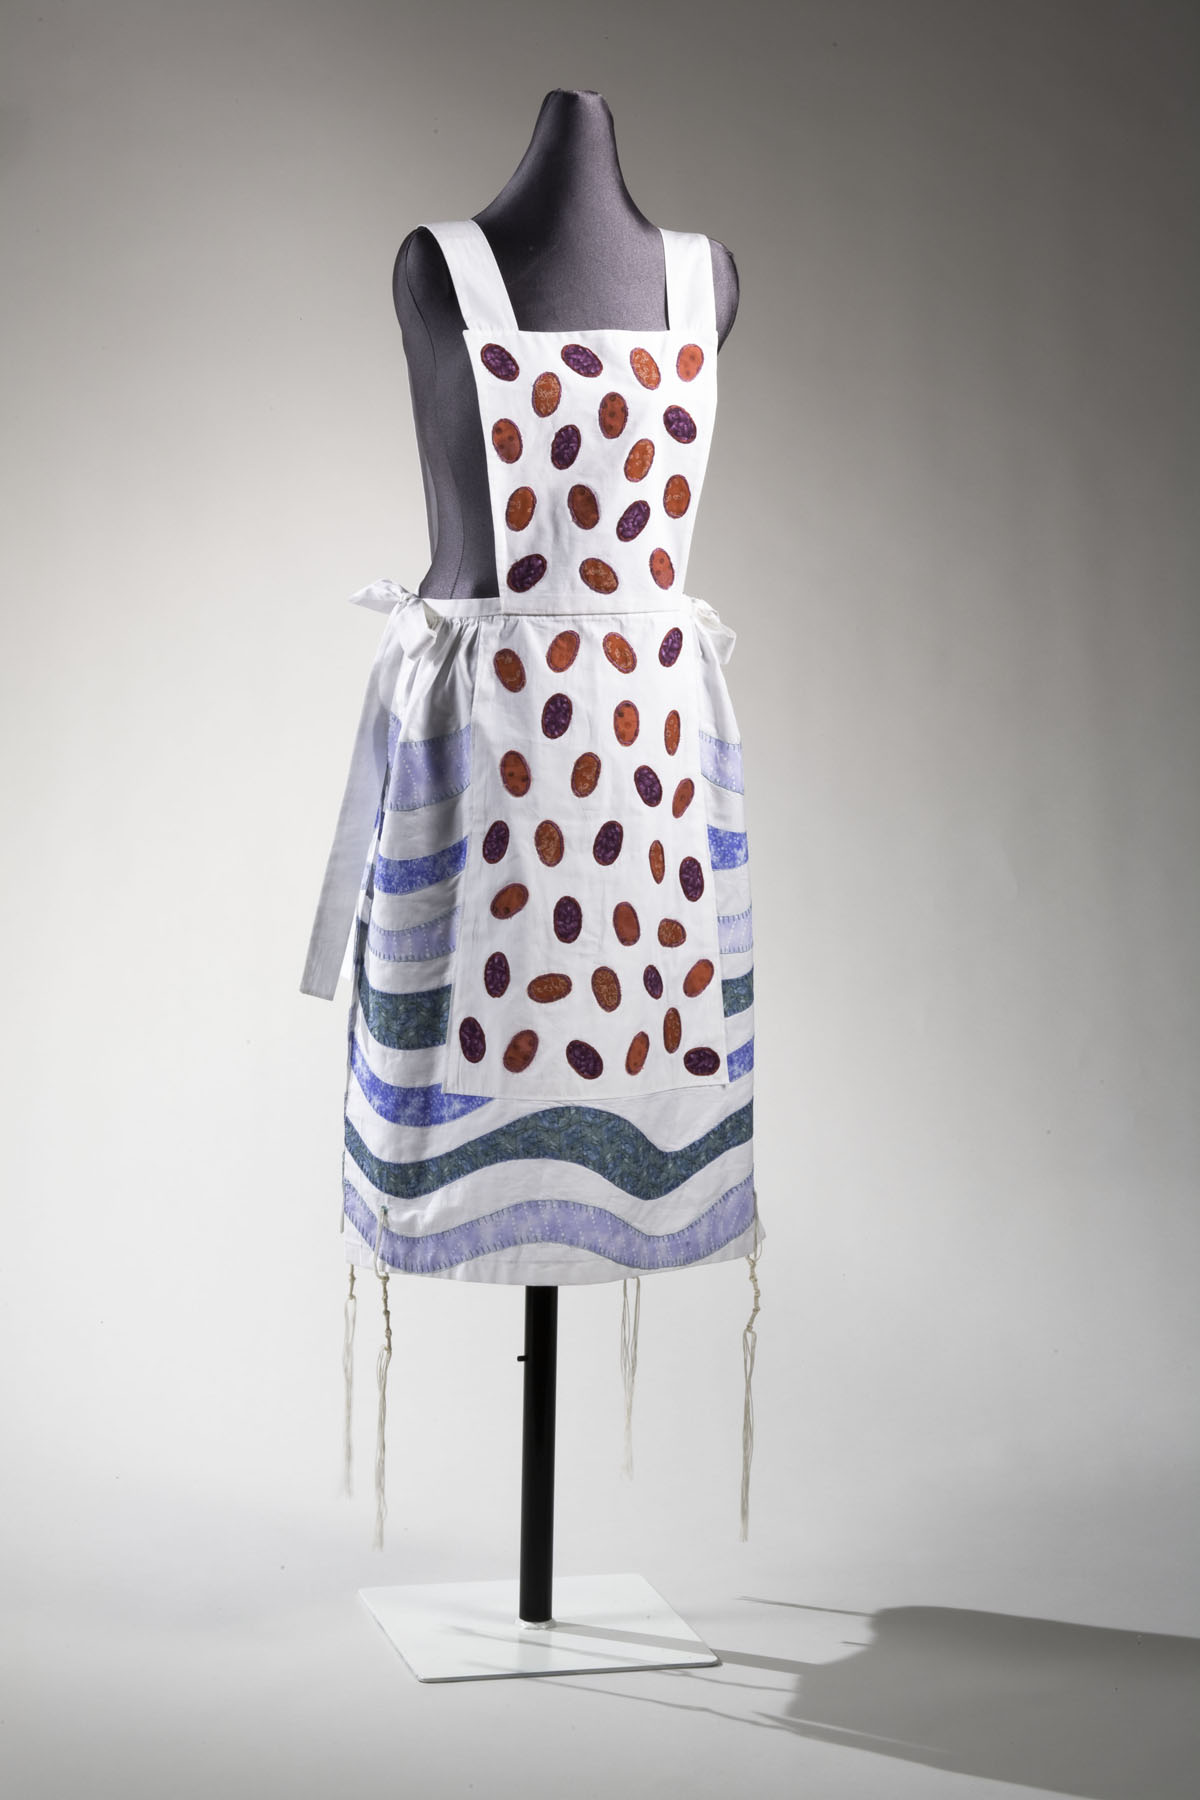 Fringed Garment (2005), cotton: stitched and appliquéd by Rachel Kanter Courtesy The Jewish Museum